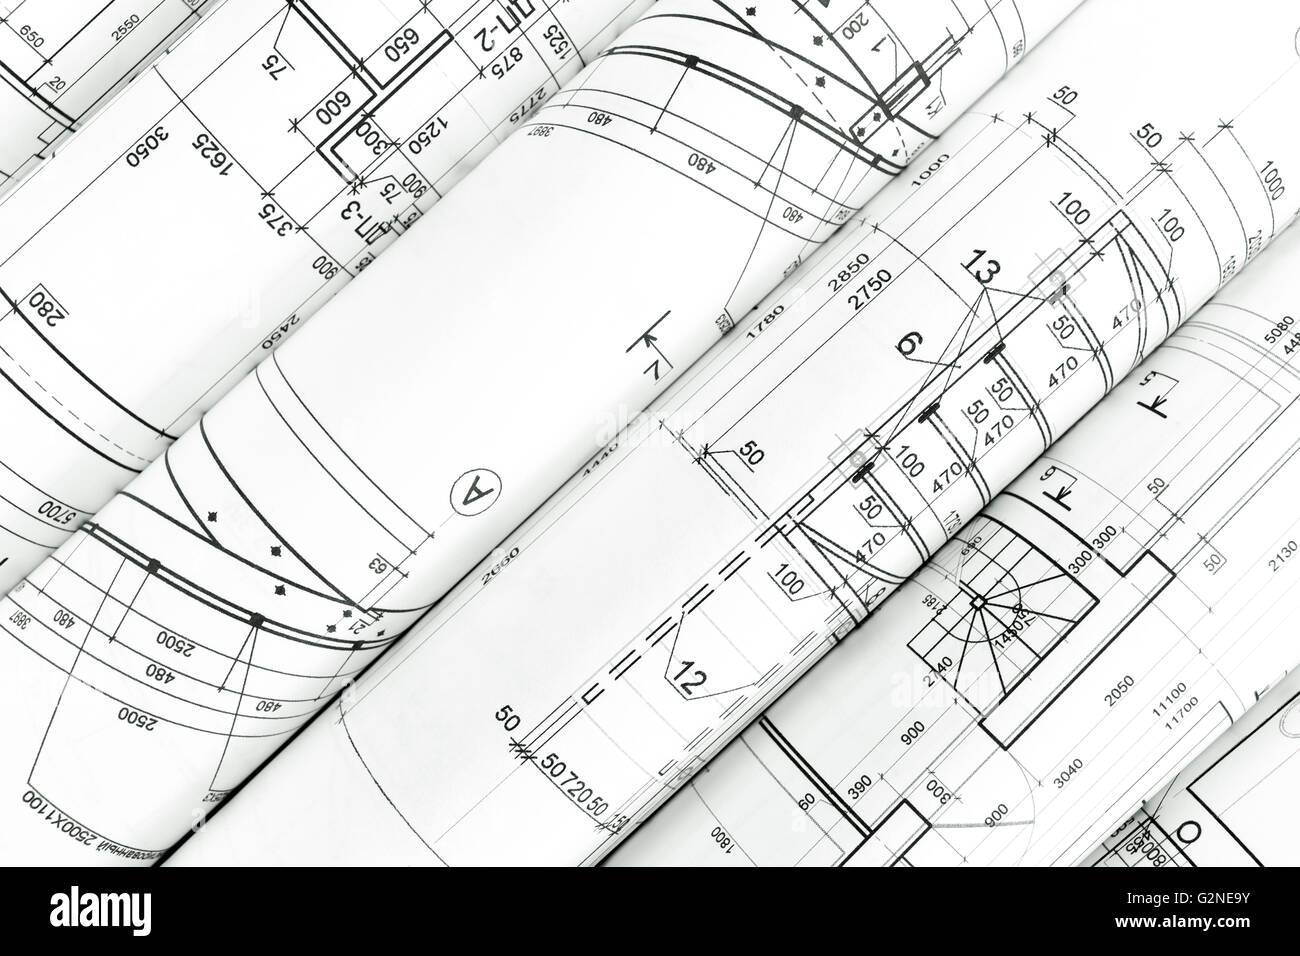 Architecture blueprints architecture blueprints architecture rolls of architecture blueprints malvernweather Images